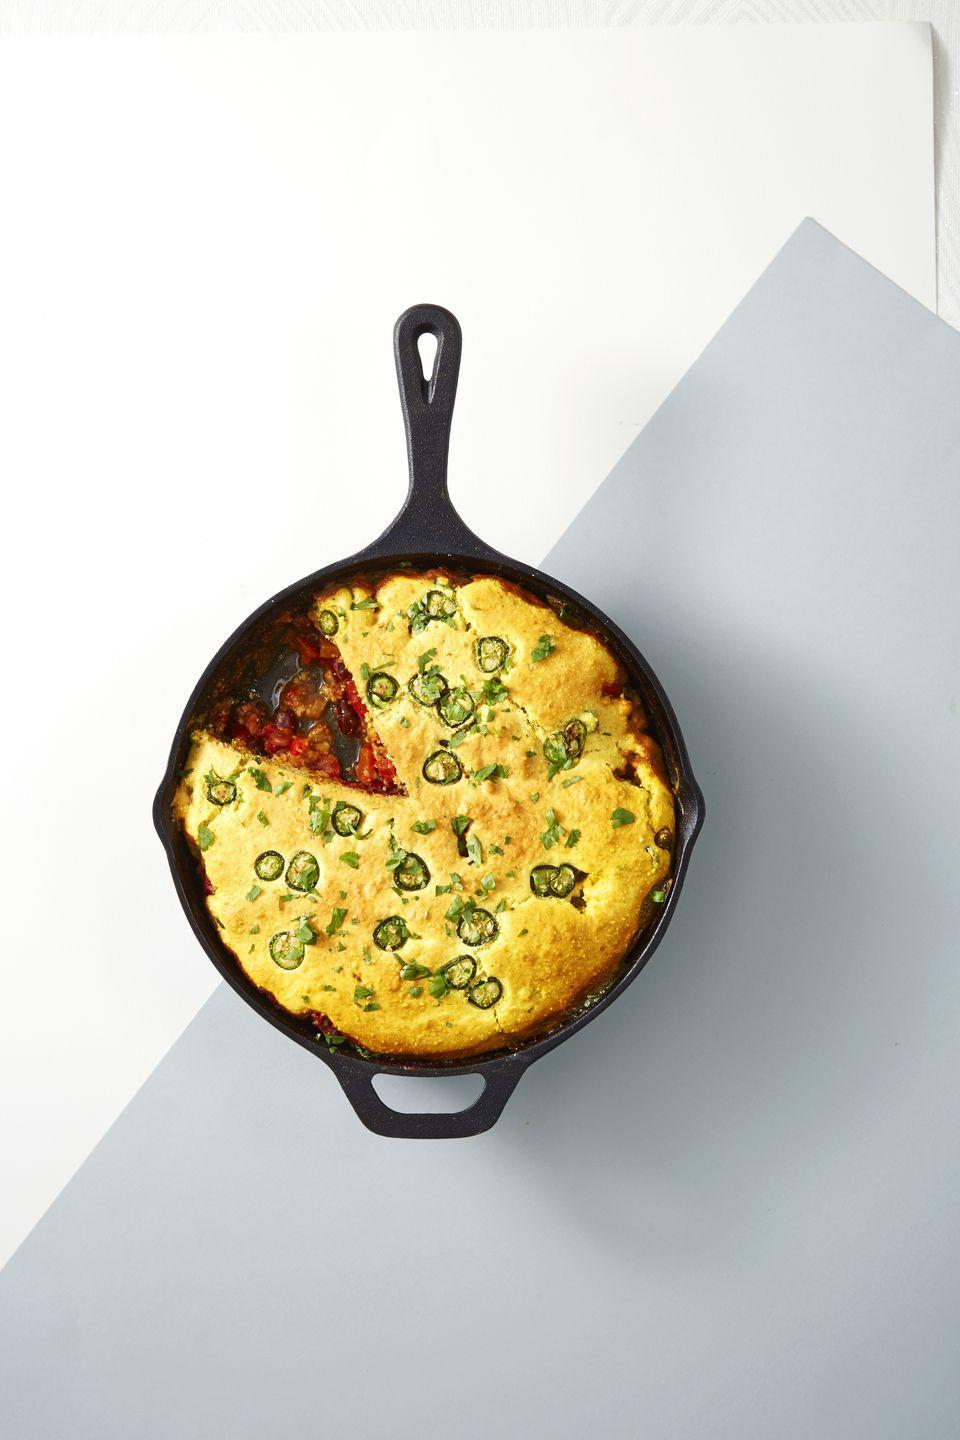 "<p>Why bother making <a href=""https://www.goodhousekeeping.com/food-recipes/a44234/carlas-cornbread-recipe/"" rel=""nofollow noopener"" target=""_blank"" data-ylk=""slk:cornbread"" class=""link rapid-noclick-resp"">cornbread</a> <em>and</em> chili when you can make it all at once?</p><p><a href=""https://www.goodhousekeeping.com/food-recipes/a42799/chili-pie-cornbread-crust-recipe/"" rel=""nofollow noopener"" target=""_blank"" data-ylk=""slk:Get the recipe for Chili Pie With Cornbread Crust »"" class=""link rapid-noclick-resp""><em>Get the recipe for Chili Pie With Cornbread Crust »</em></a><br></p>"